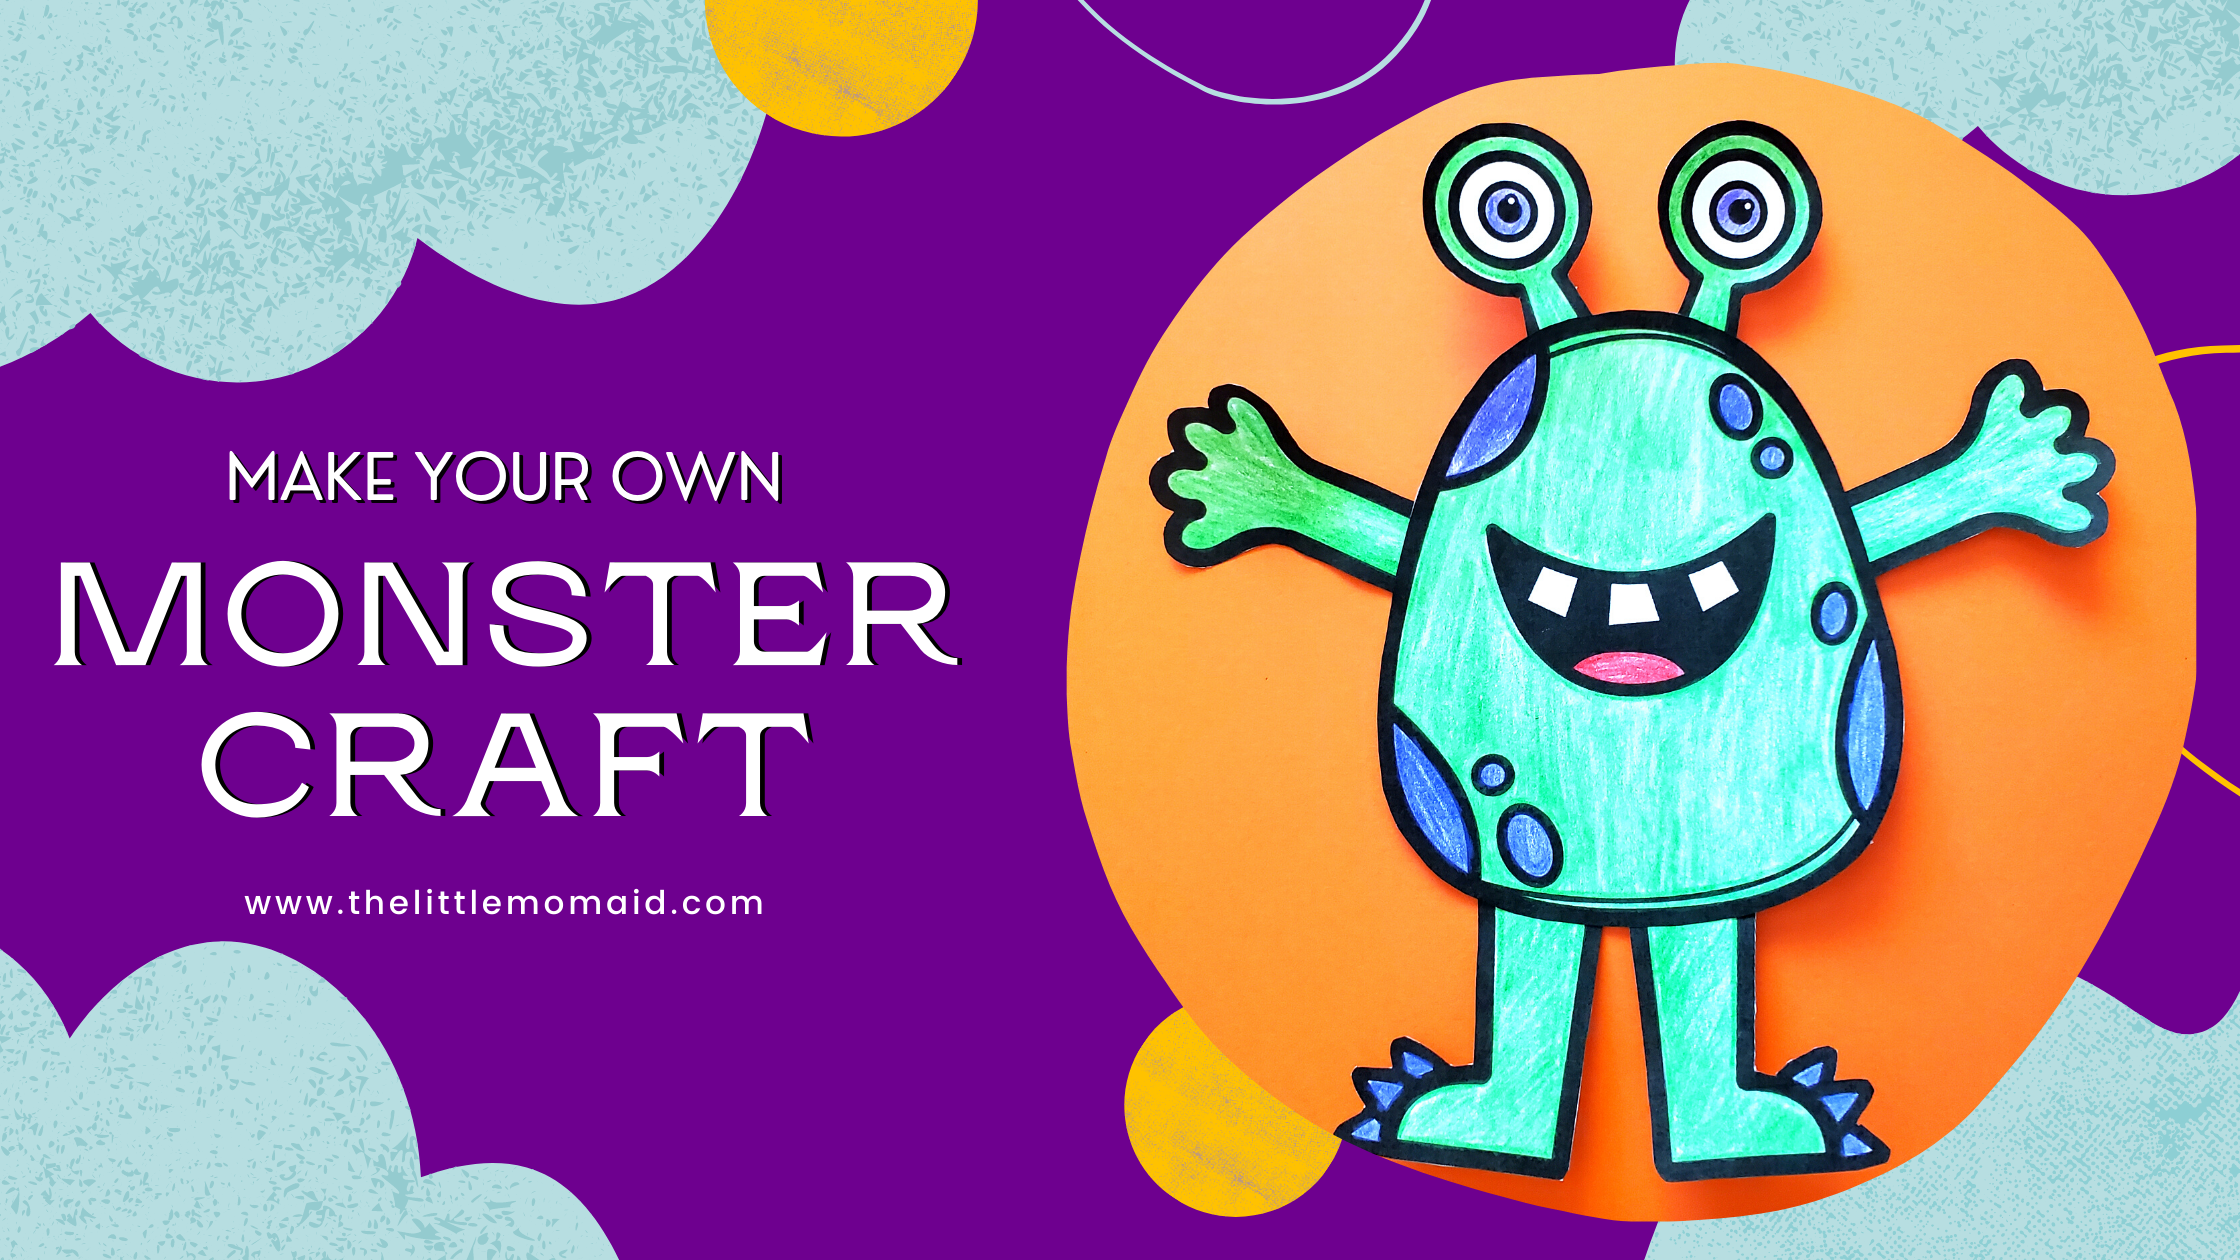 This build-a-monster activity is a fun craft for kids. They will have a blast being creative, working on cutting skills, and fine motor skills.